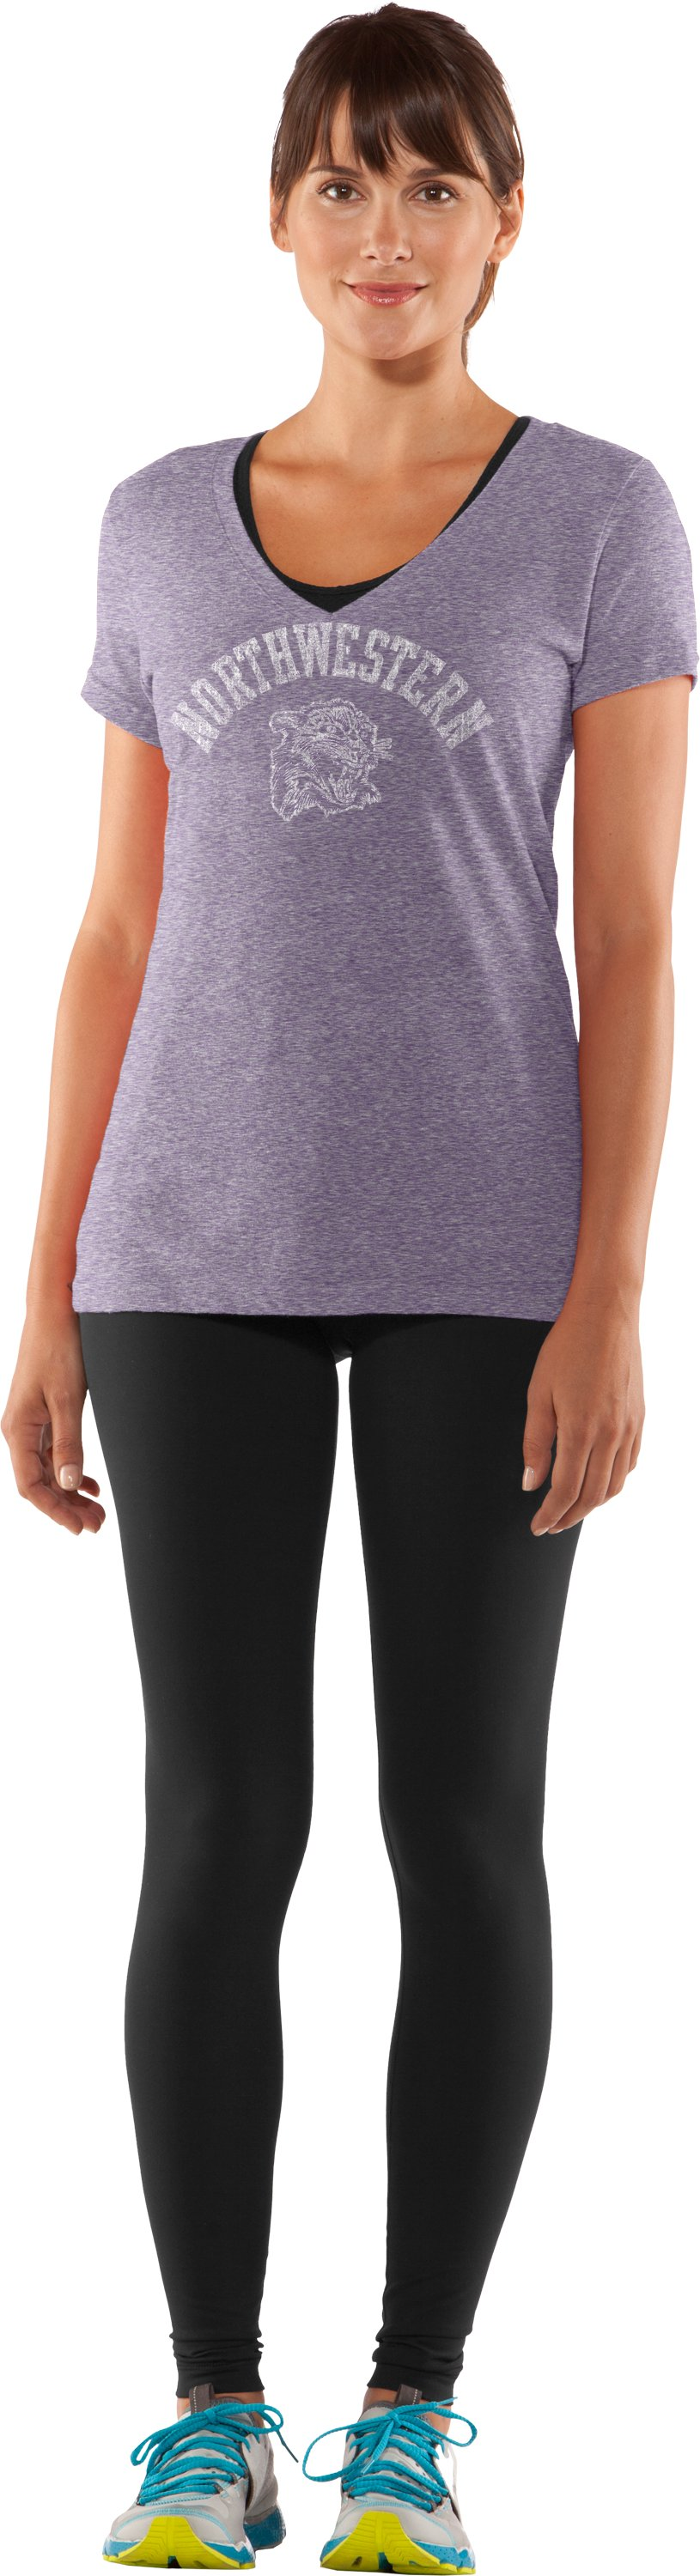 Women's Northwestern Under Armour® Legacy T-Shirt, Purple, Front